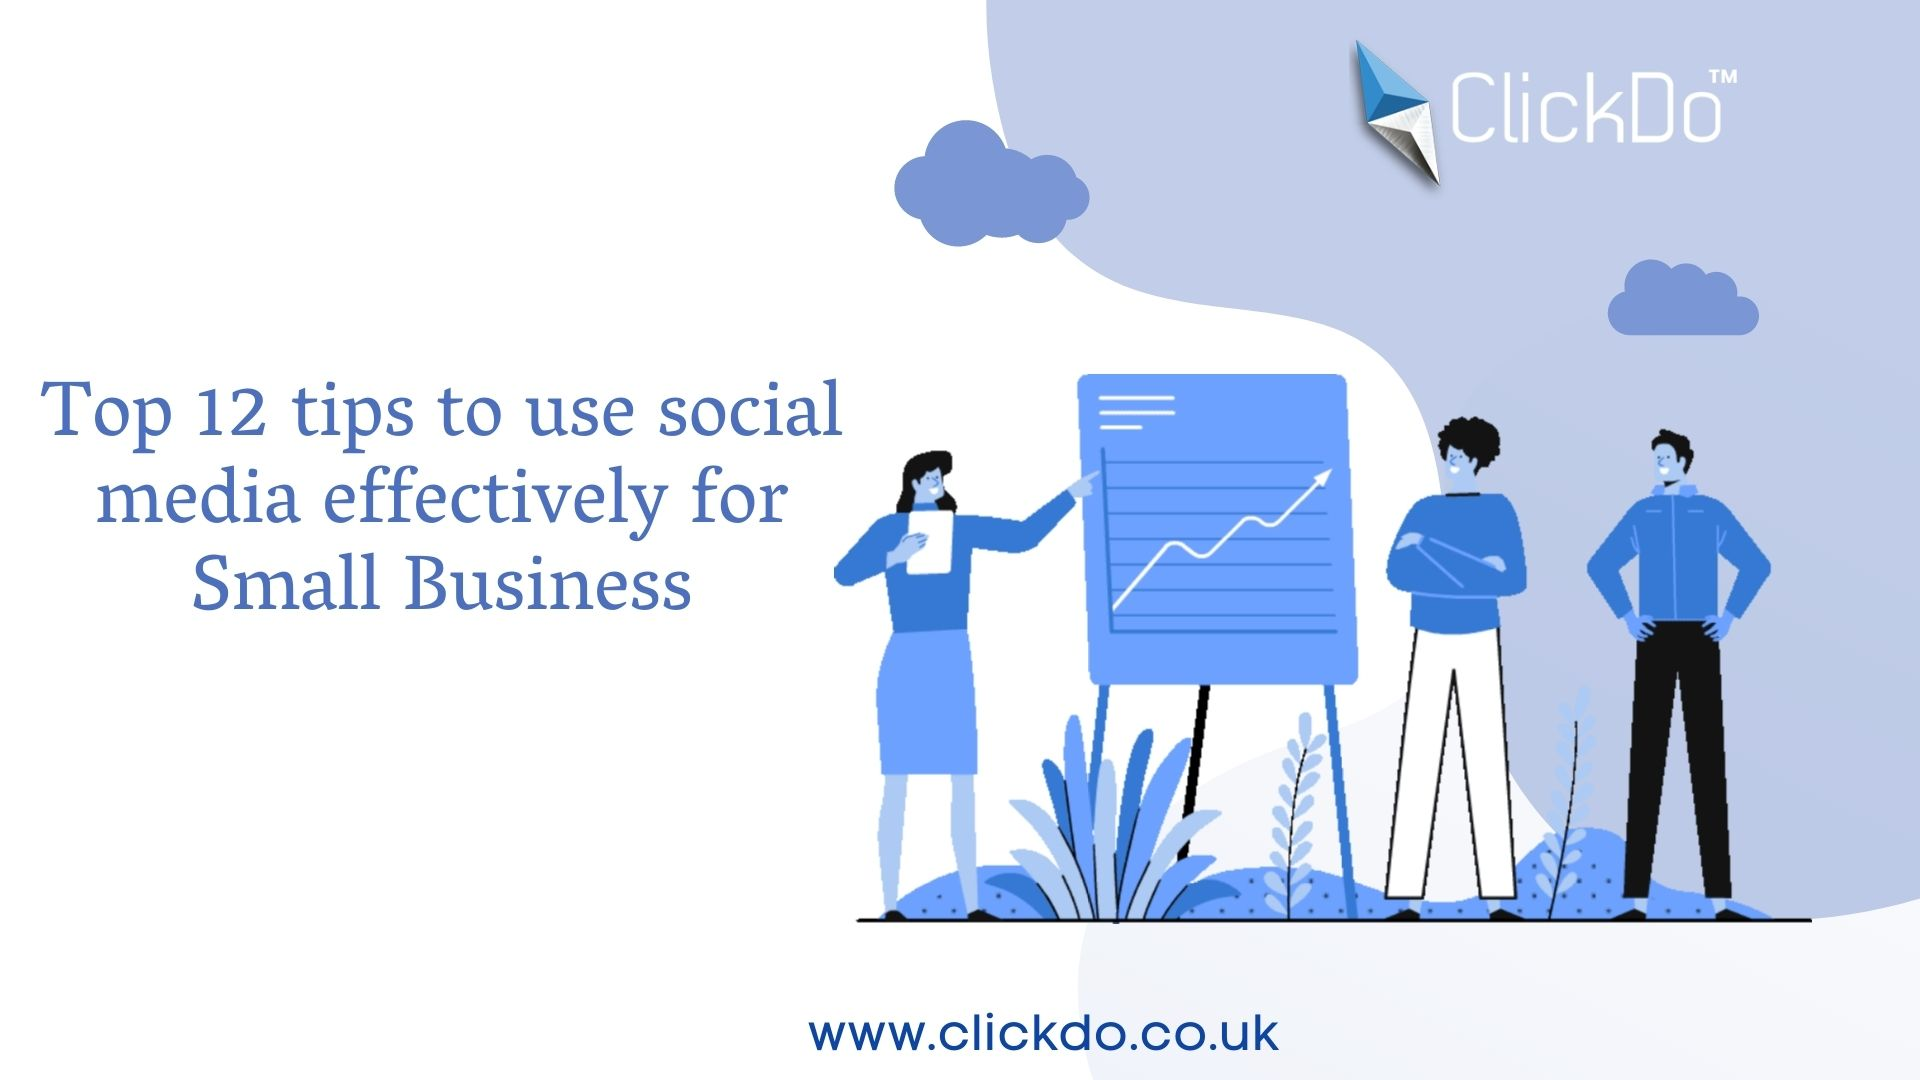 Top 12 tips to use social media effectively for Small Business